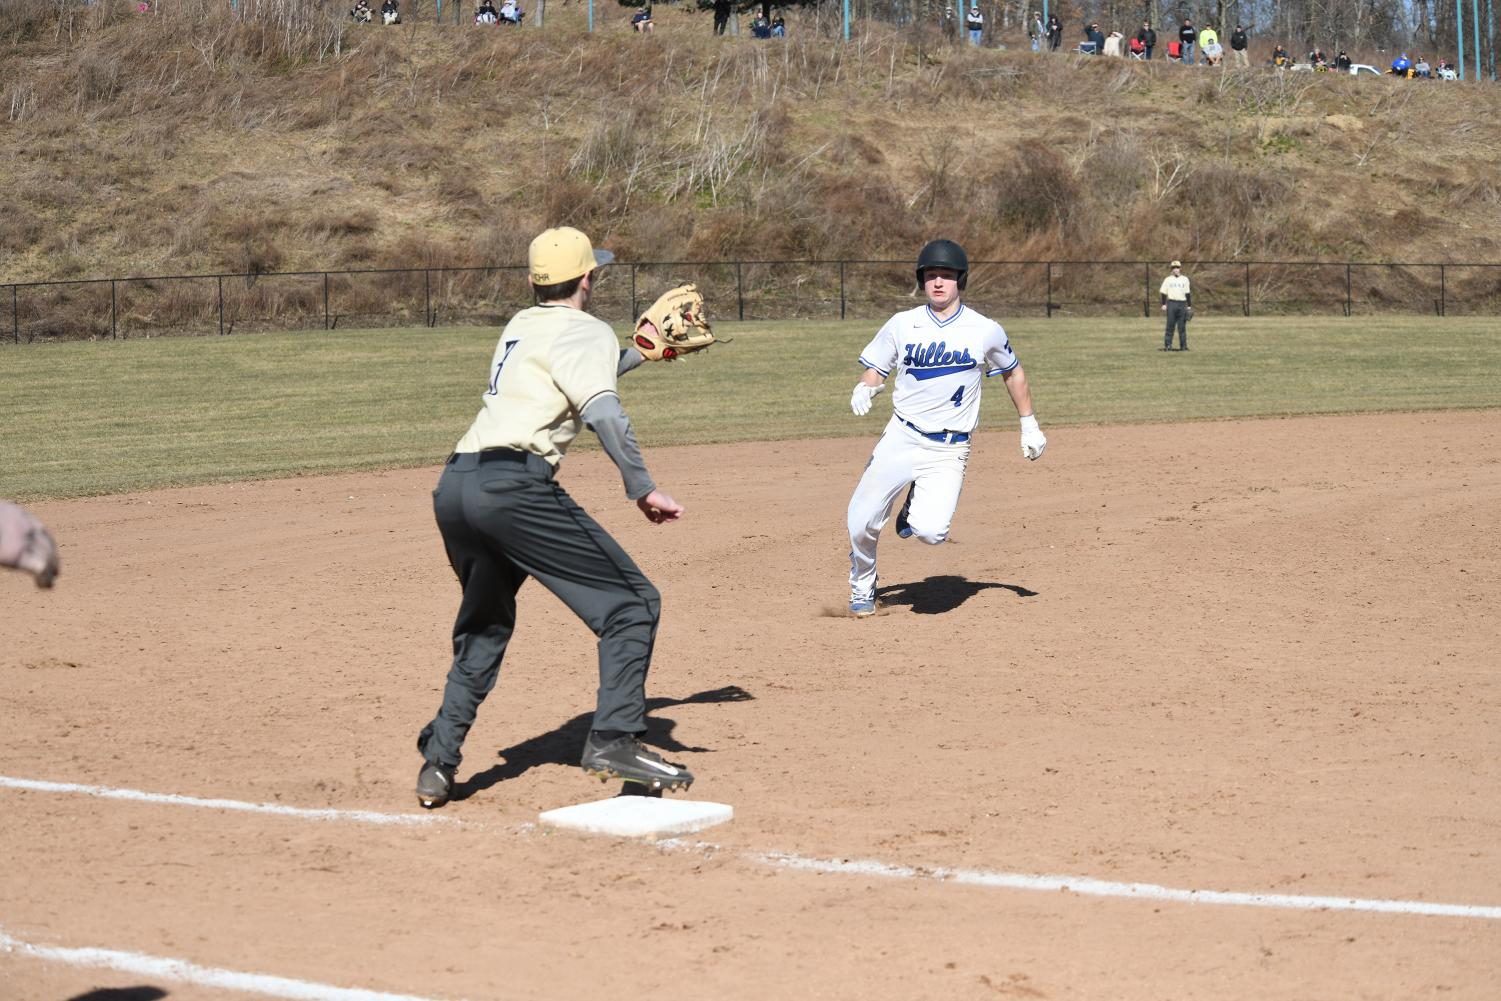 Junior catcher Jax Banco prepares himself to slide into third base in a game for the Hillers last season.